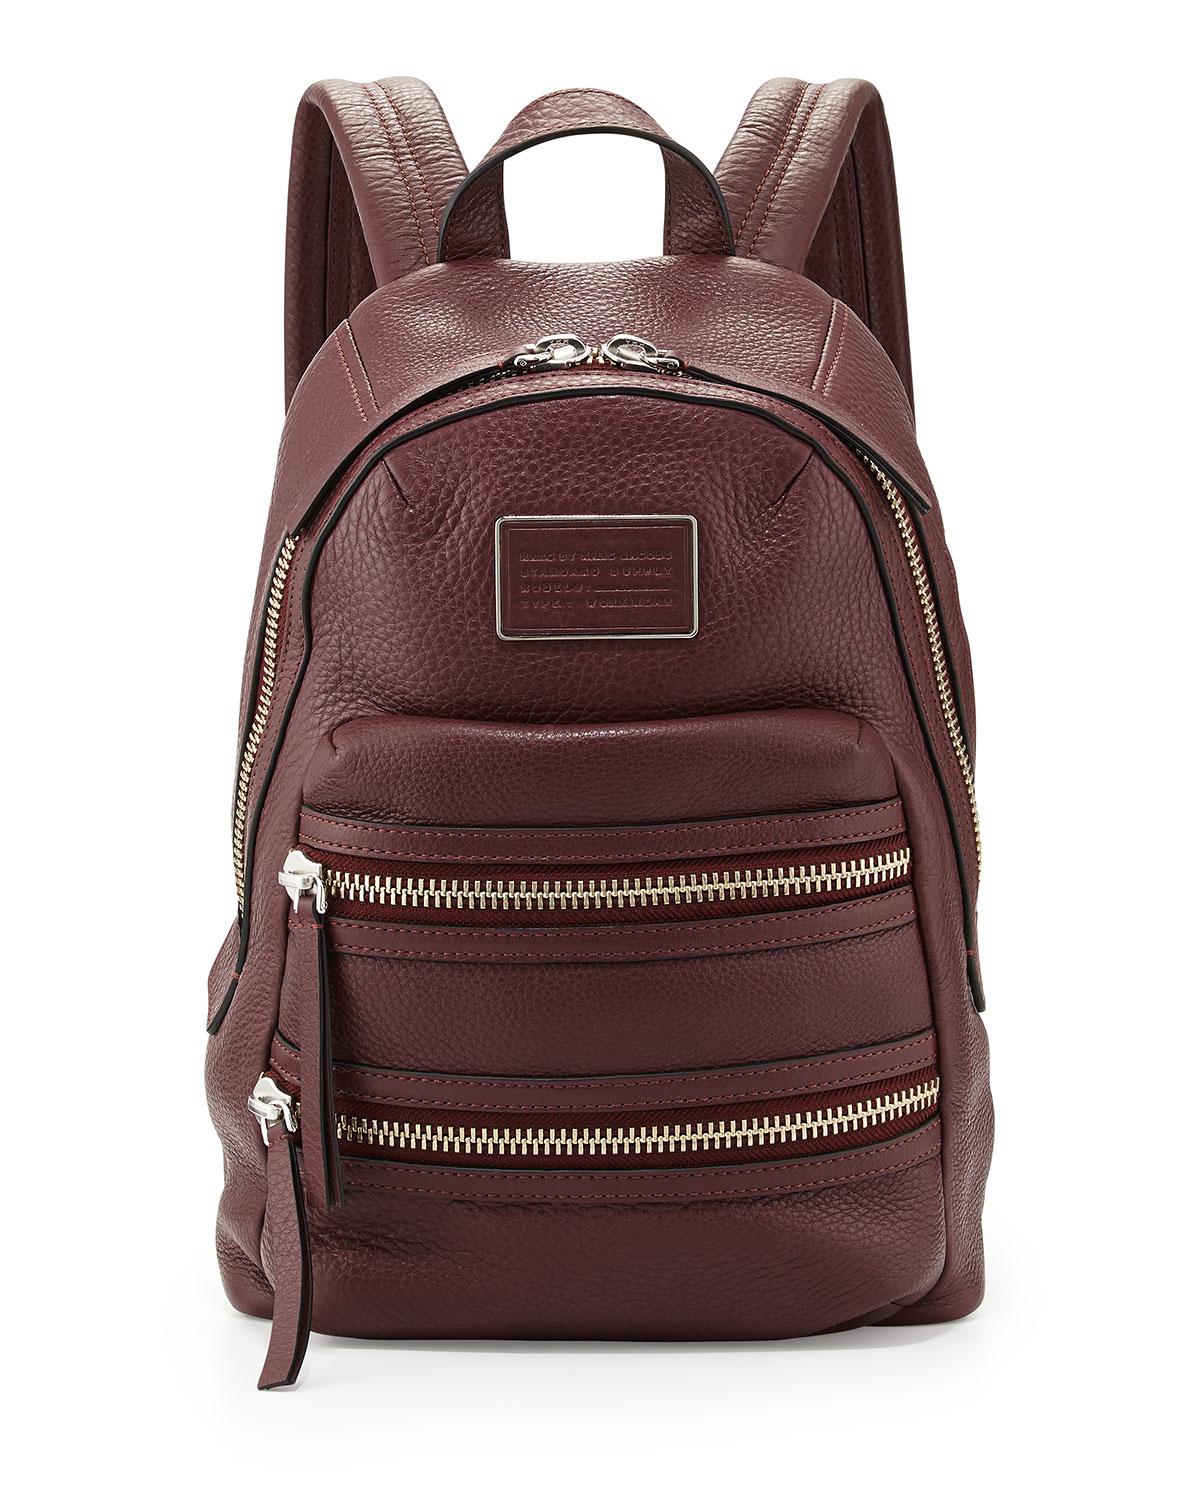 marc by marc jacobs domo biker leather backpack in purple lyst. Black Bedroom Furniture Sets. Home Design Ideas